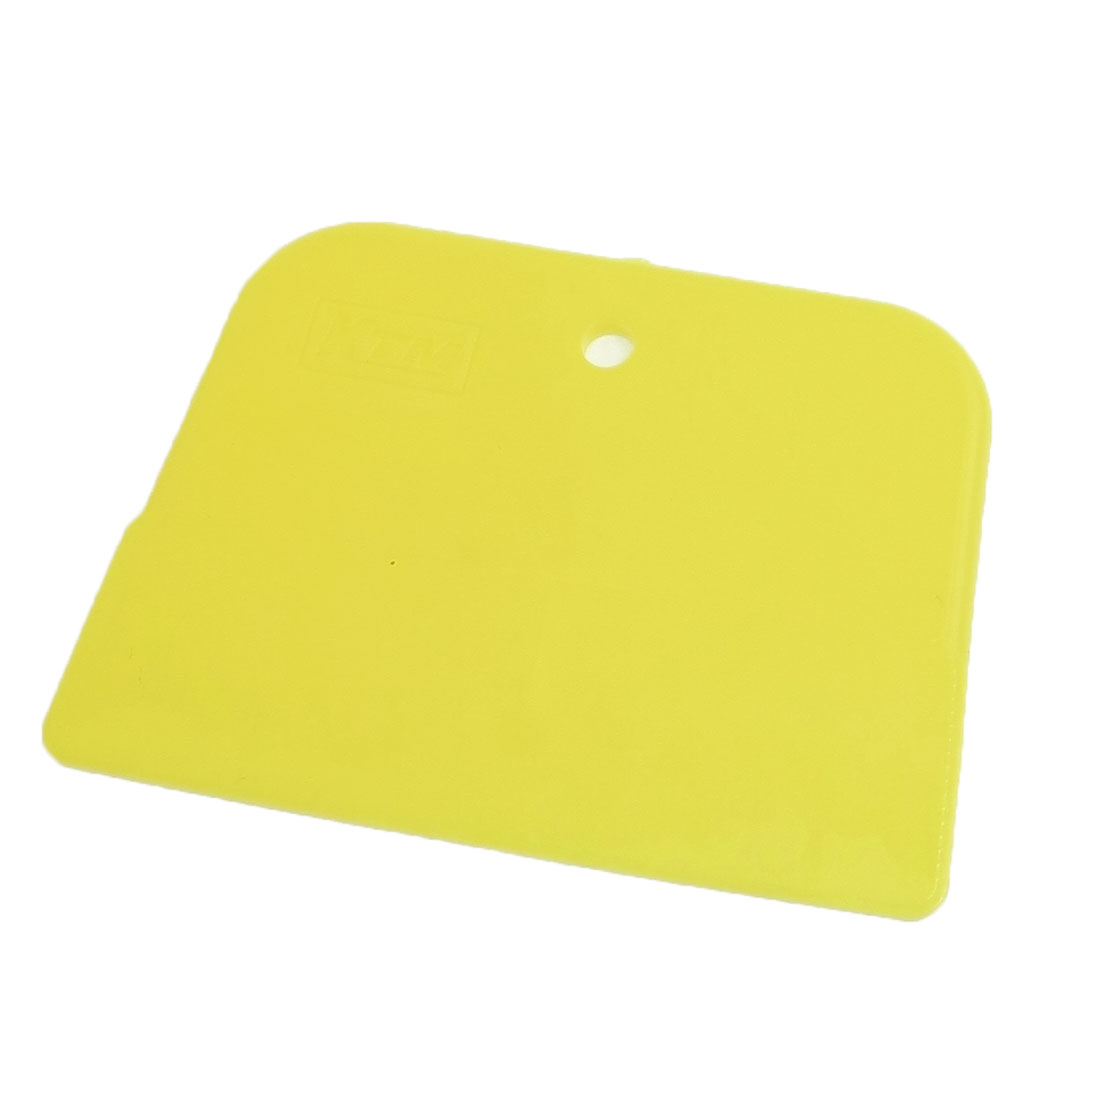 Car Auto Yellow Plastic Window Glass Scraping Blade Scraper Tool